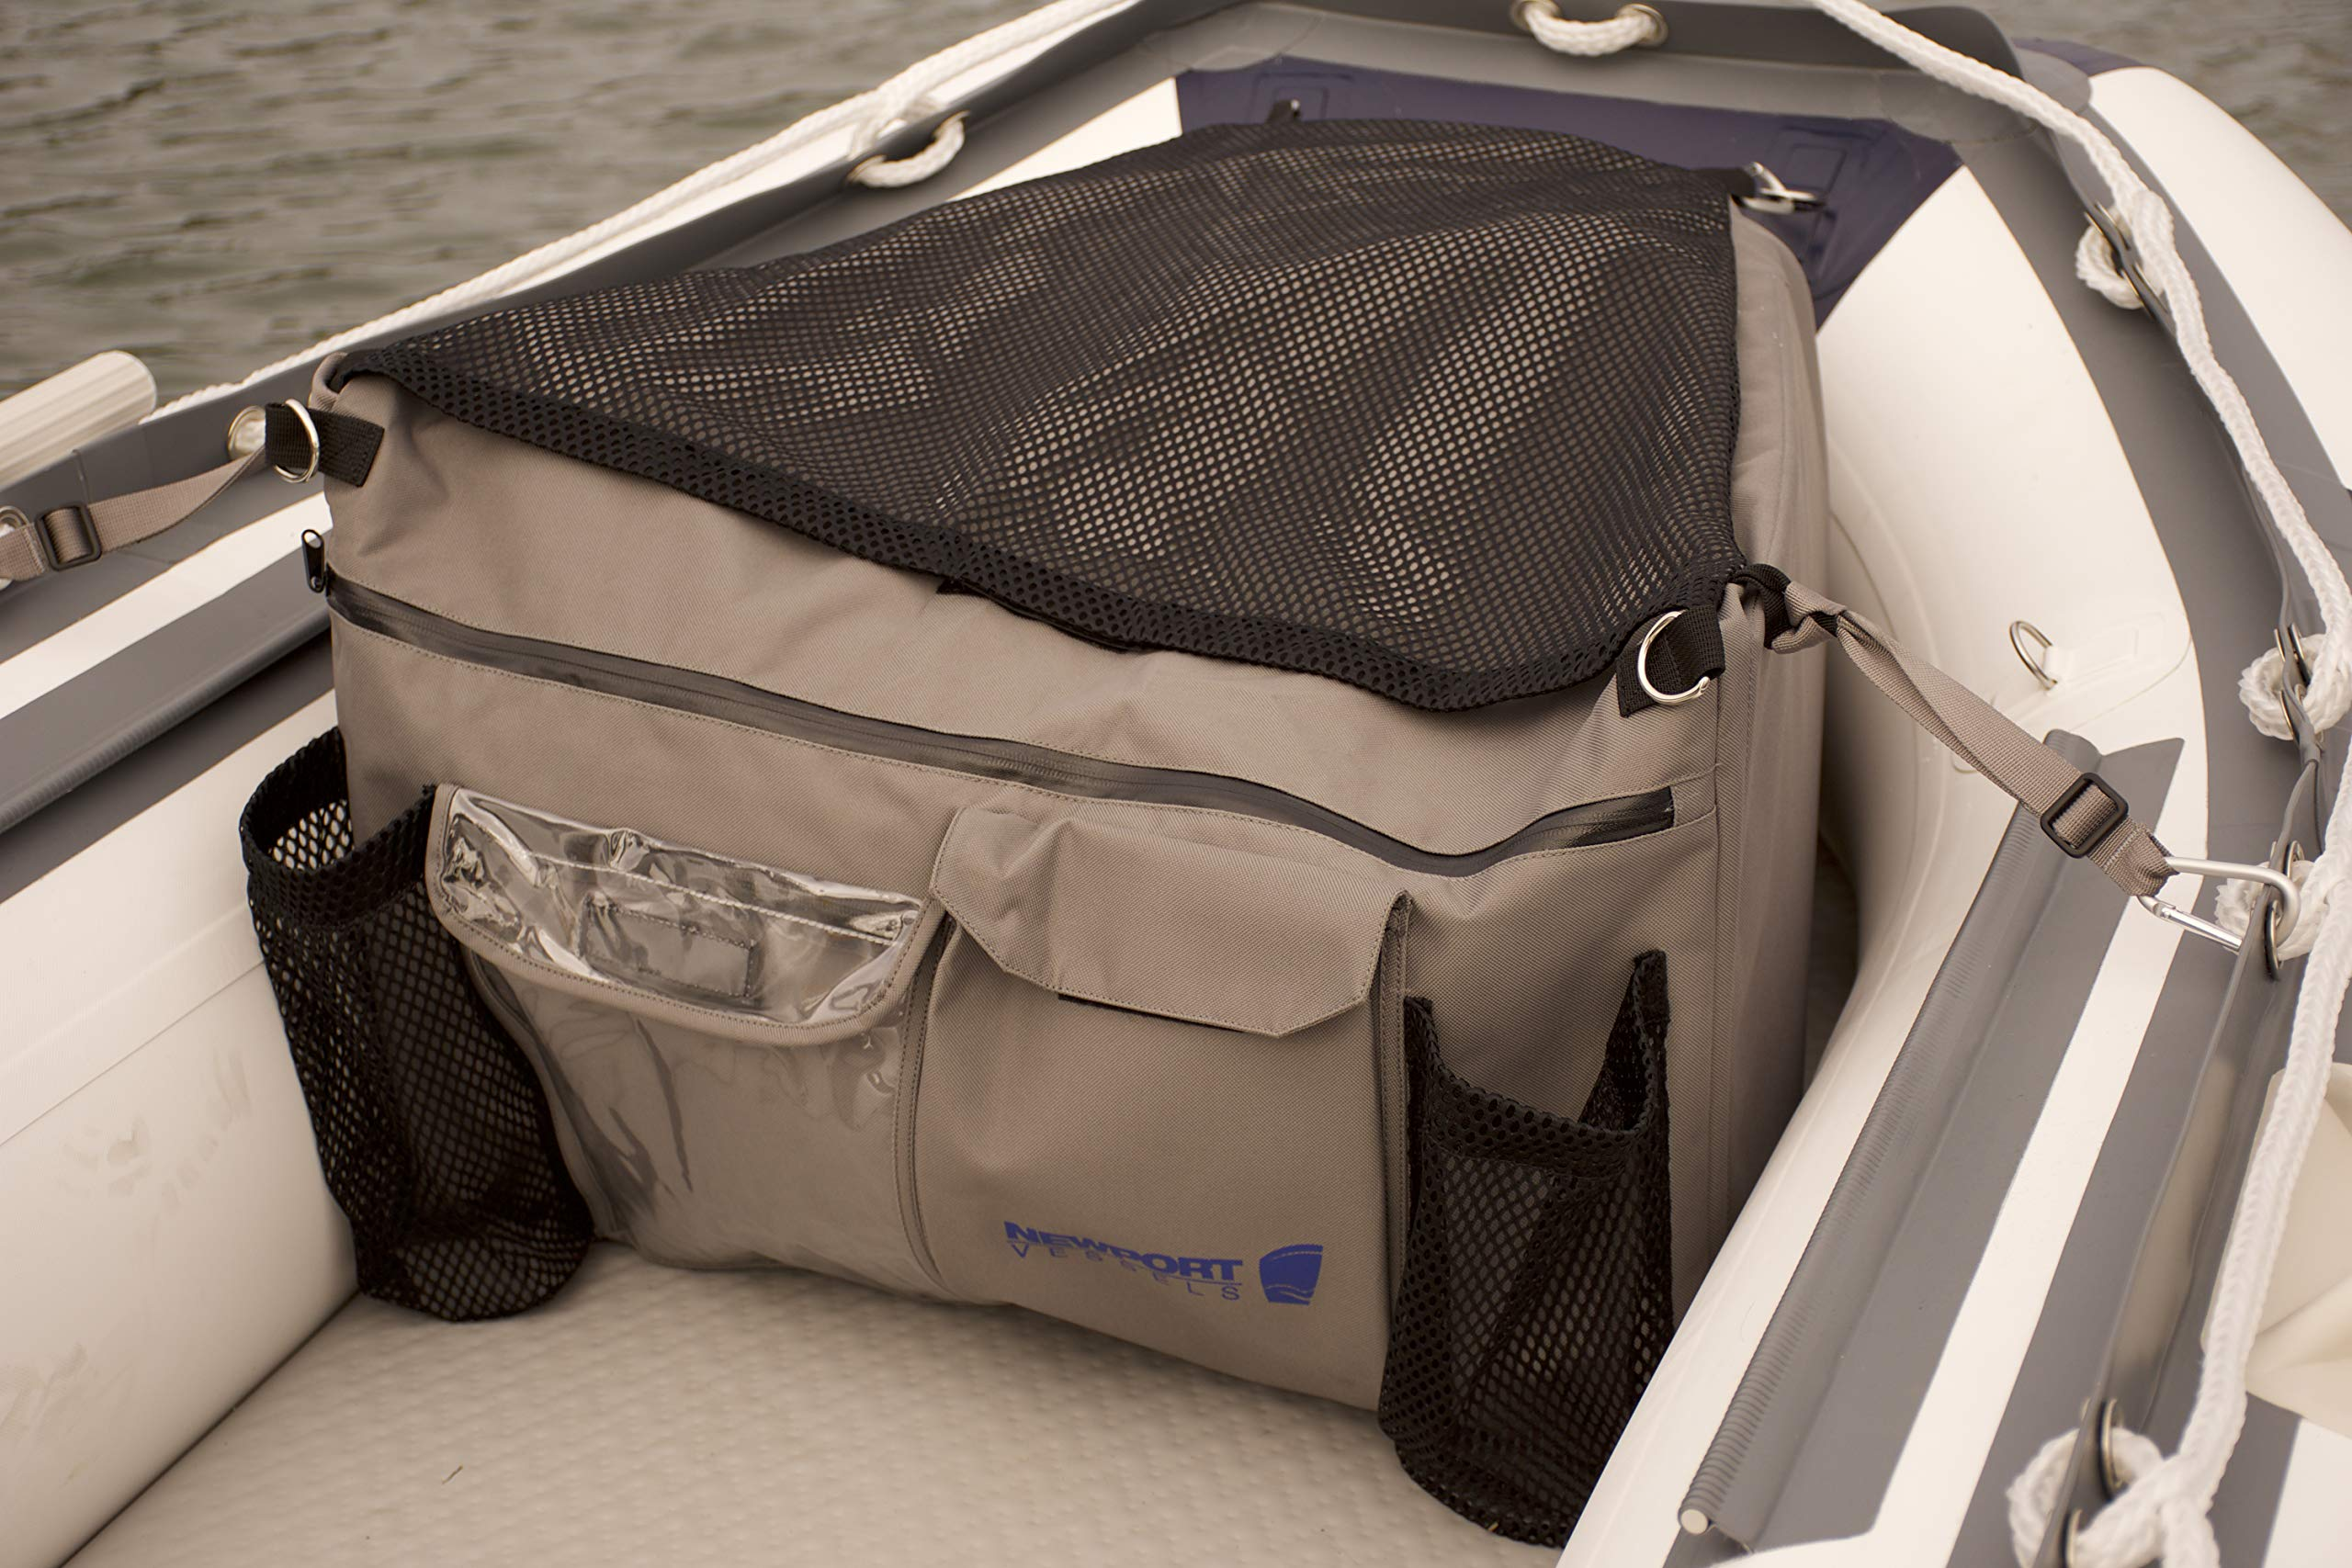 Newport Vessels Dinghy & Inflatable Boat Bow Storage Bag by Newport Vessels